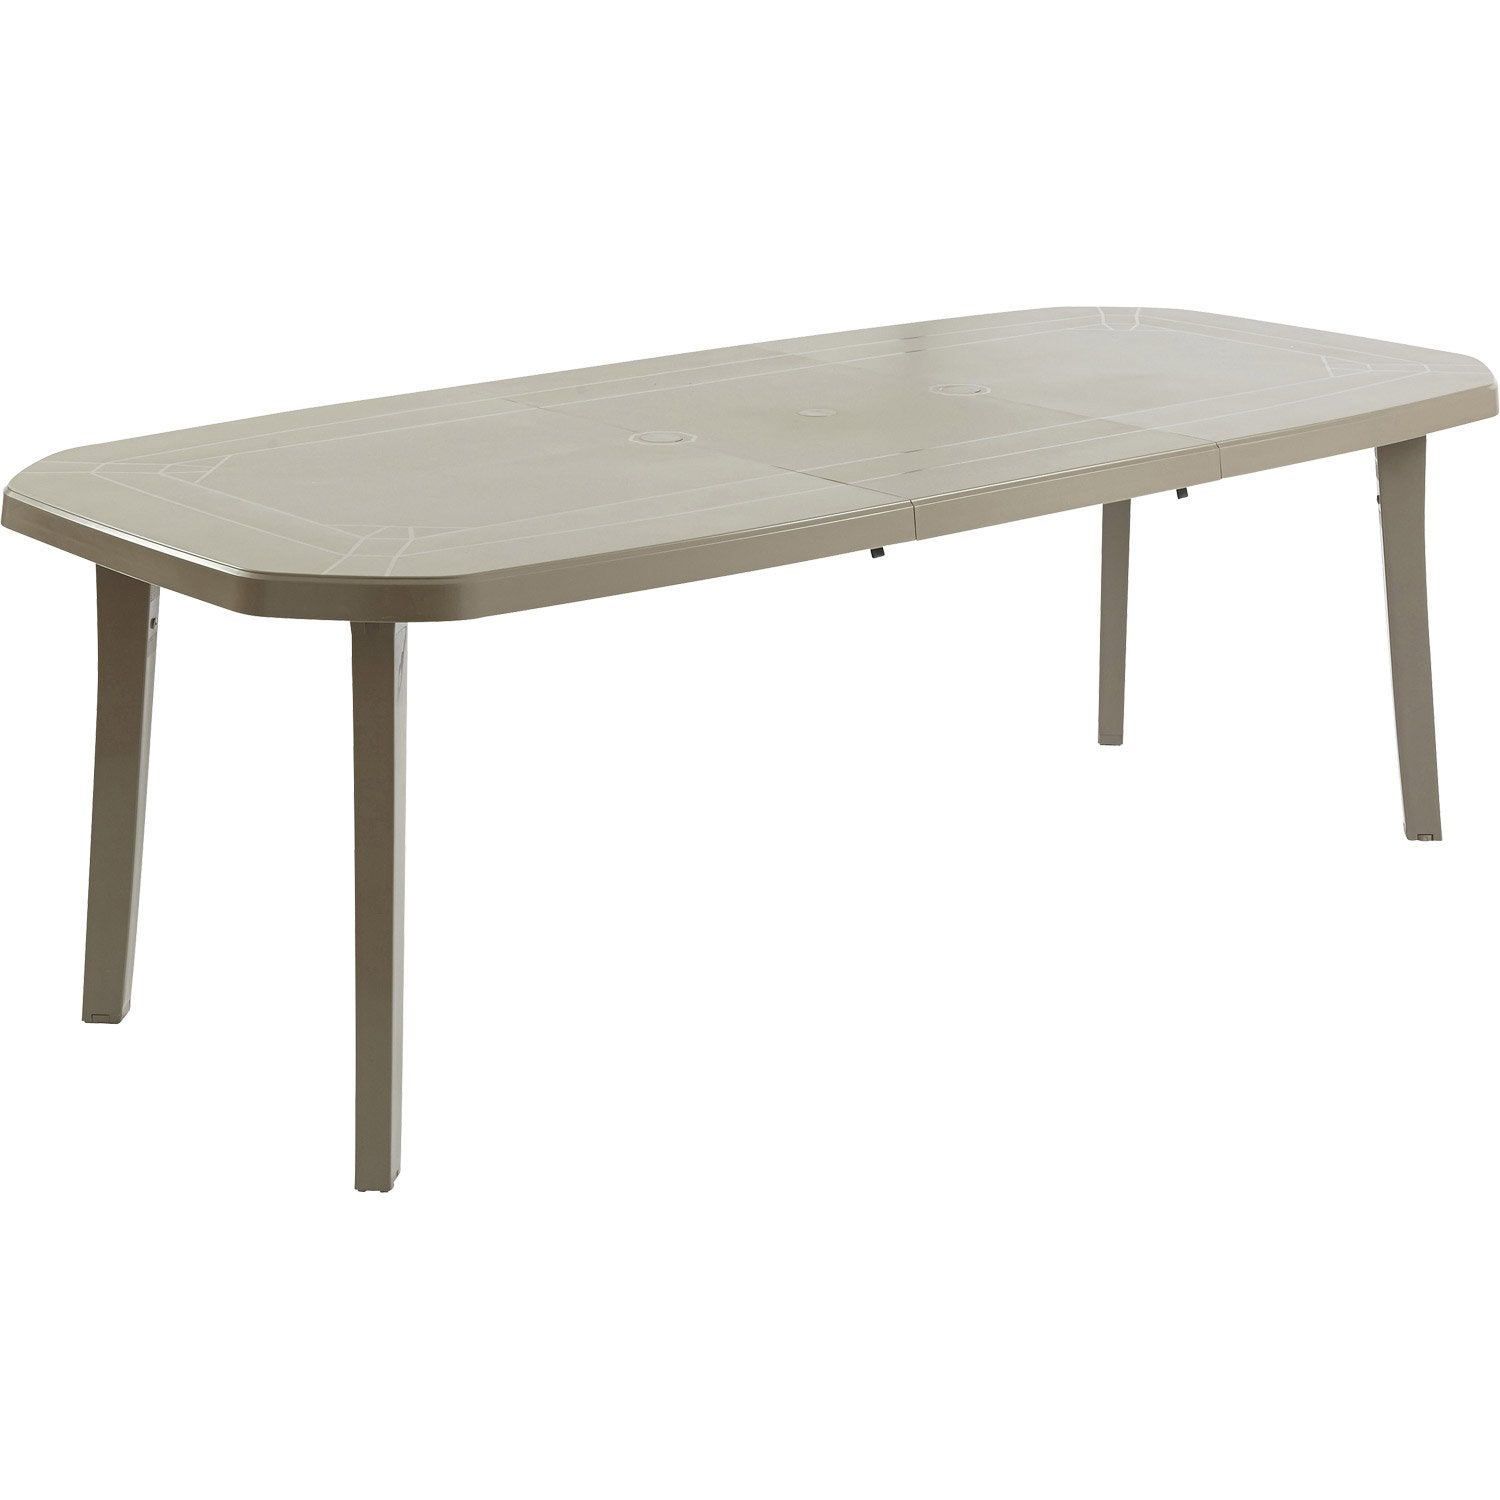 Awesome Table Jardin Resine Grosfillex Contemporary Amazing  # Salon De Jardin Amalfi Grosfillex Bronze